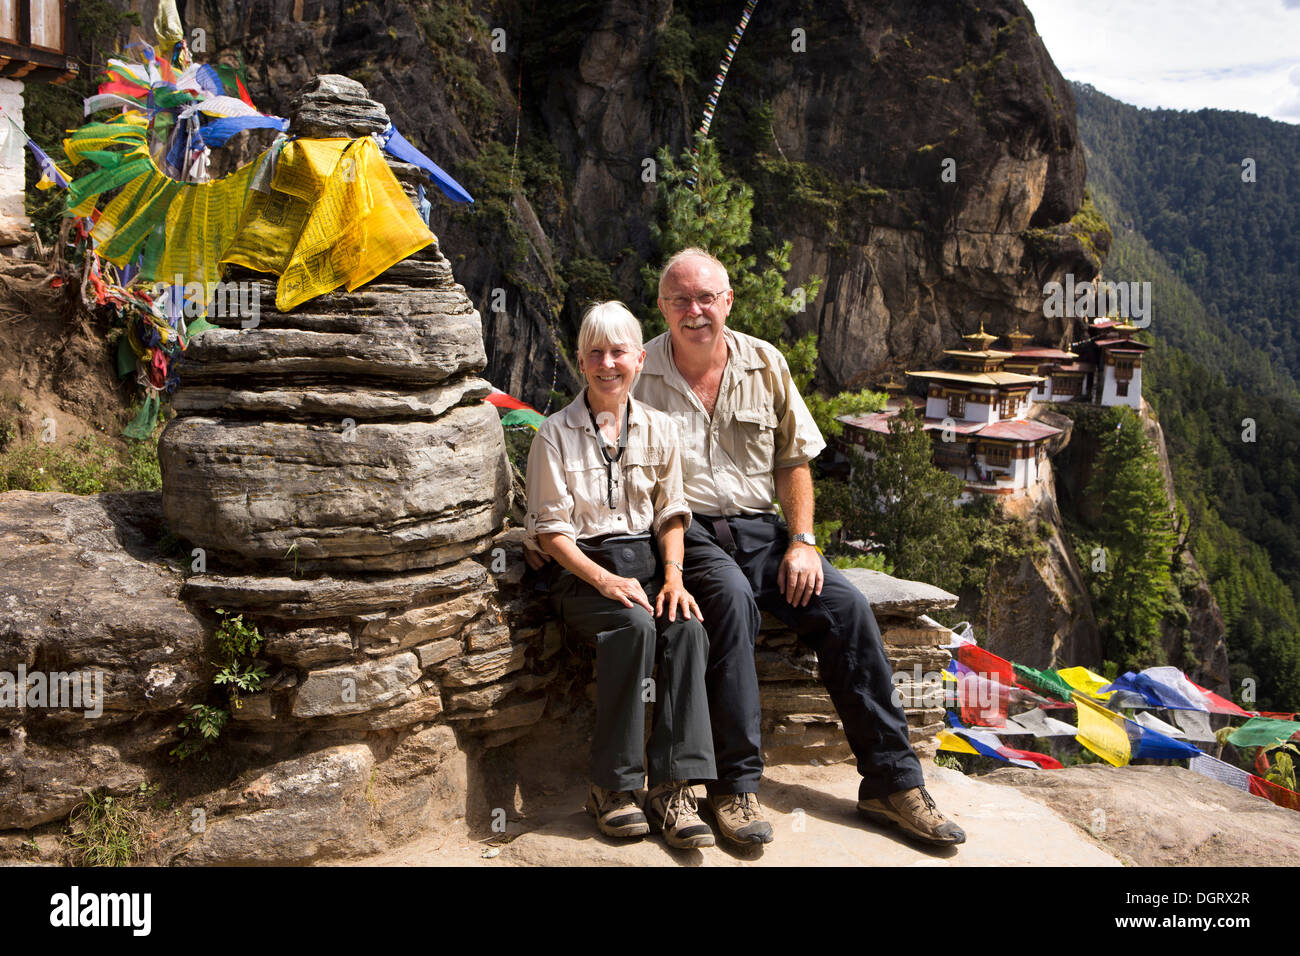 Bhutan, Paro valley, tourists at Taktsang Lhakang (Tiger's Nest) monastery - Stock Image